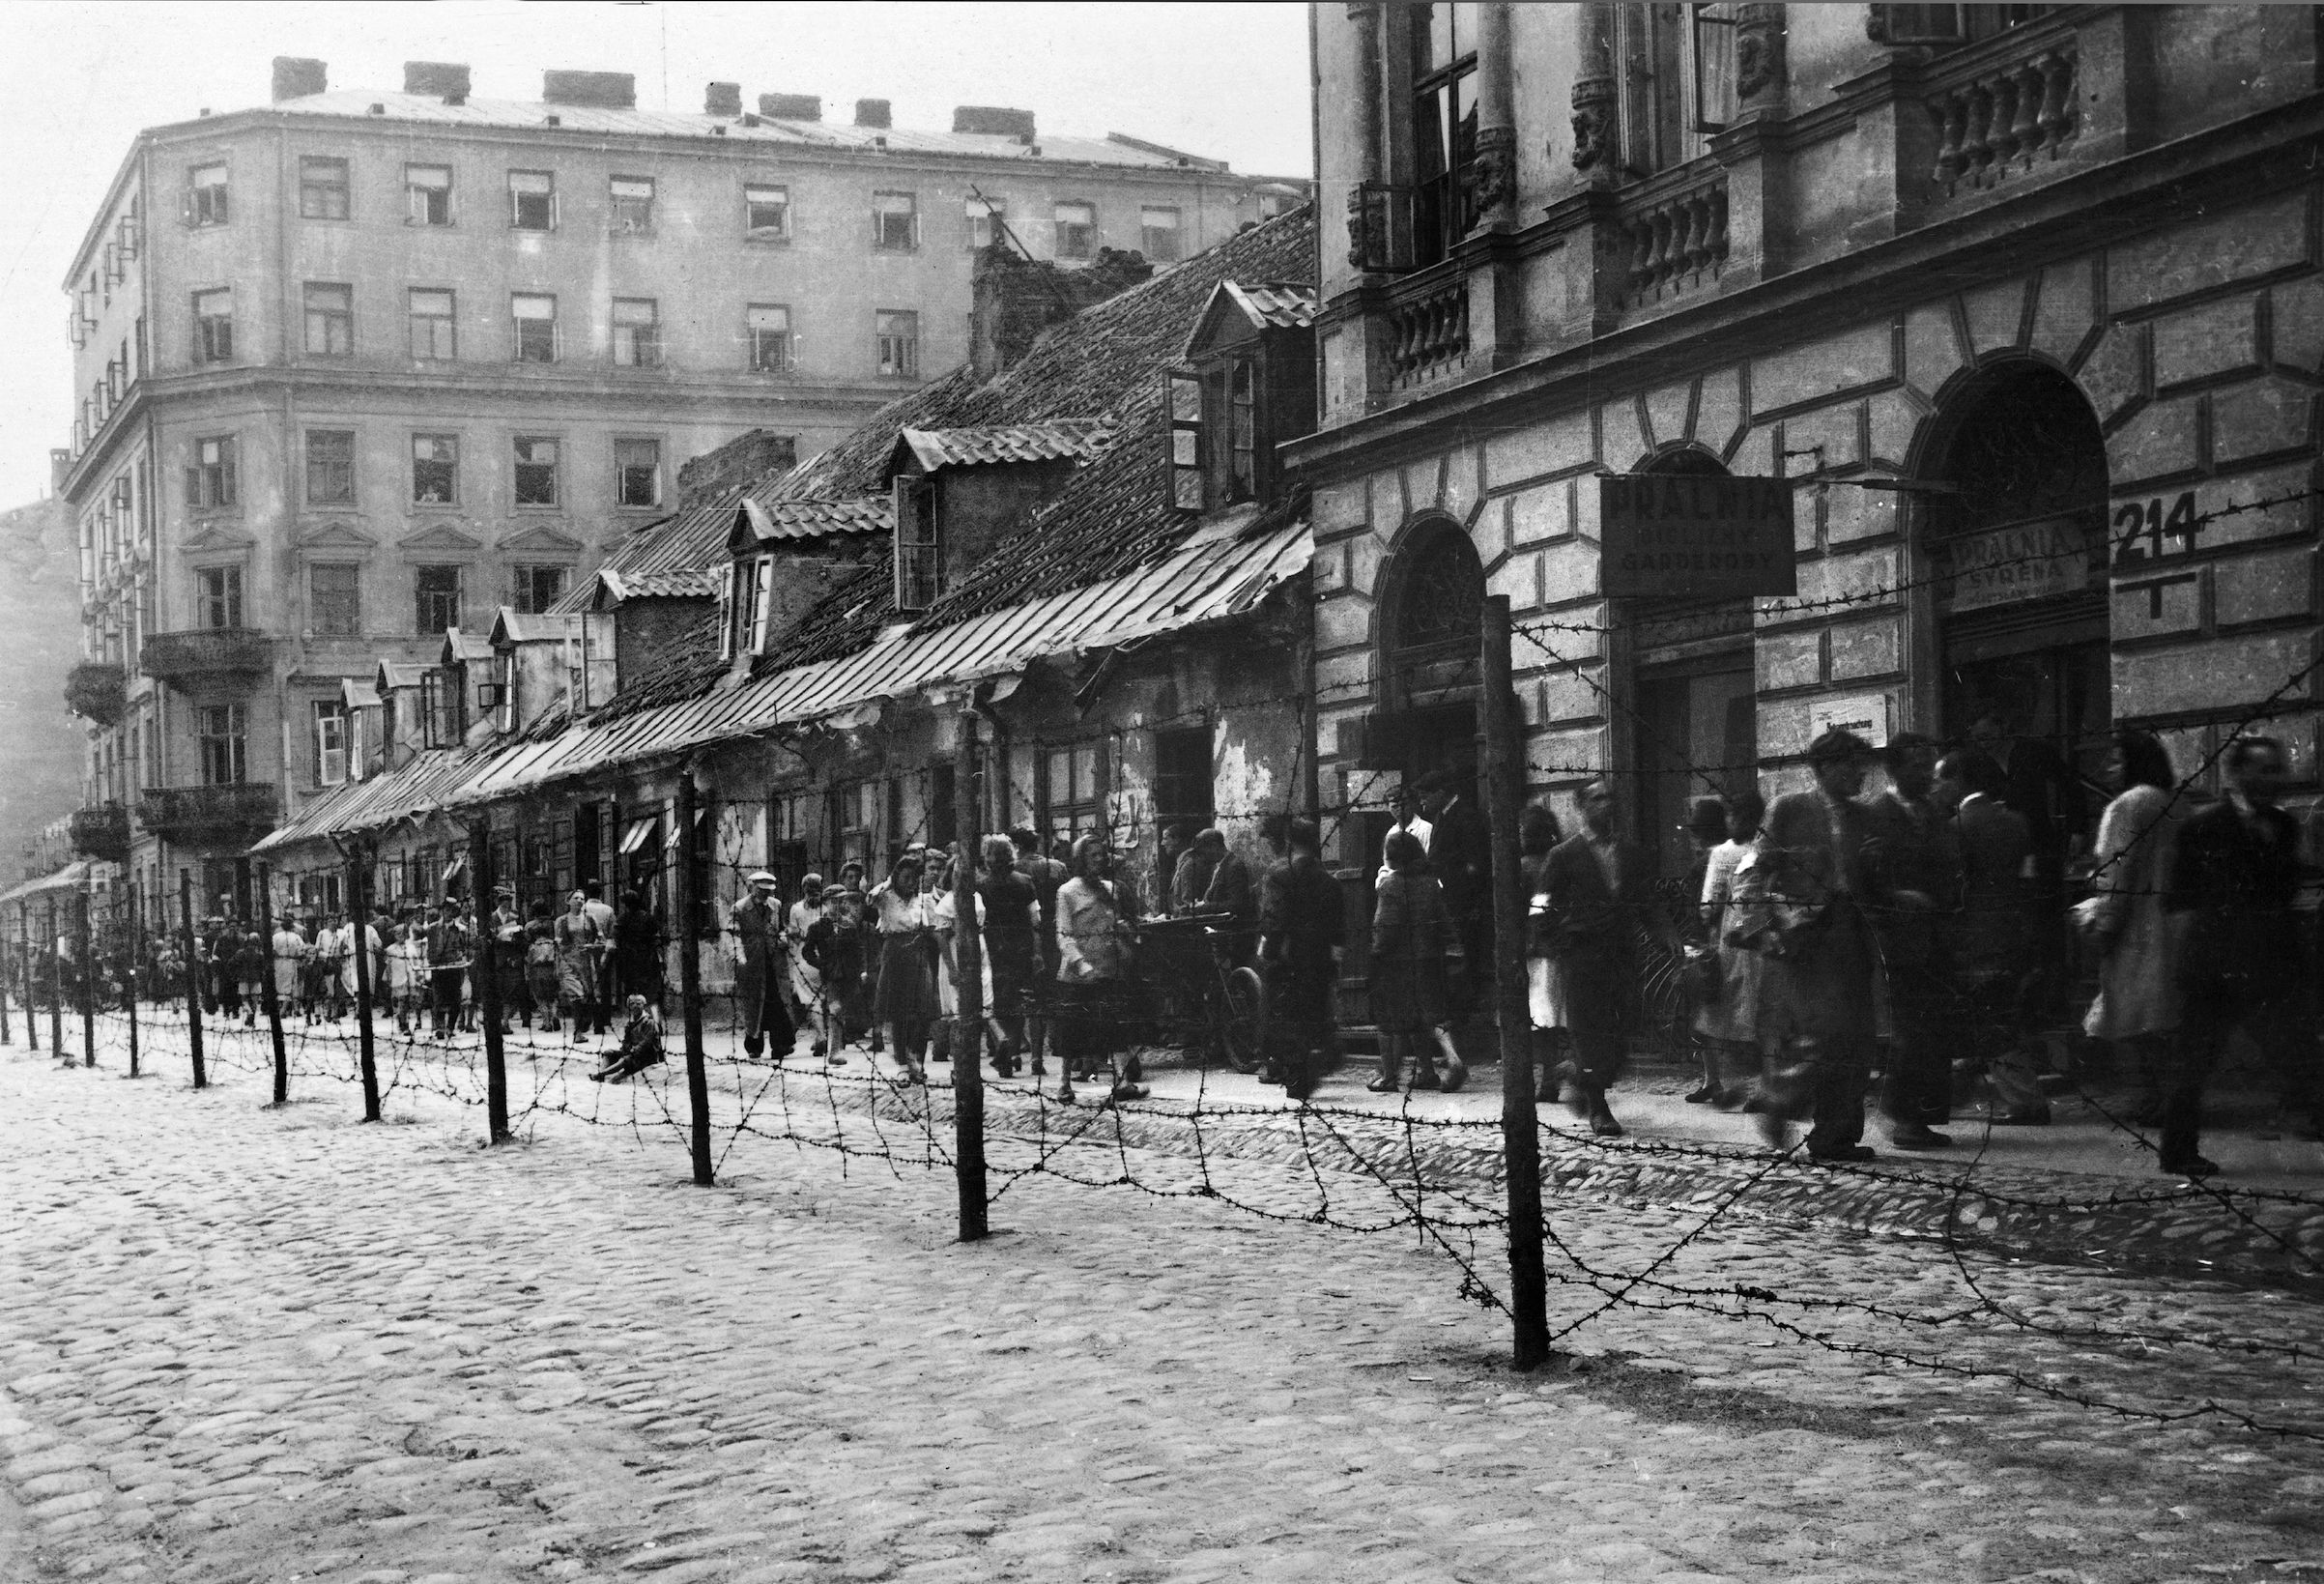 The Warsaw Ghetto behind barbed wire, early 1940s